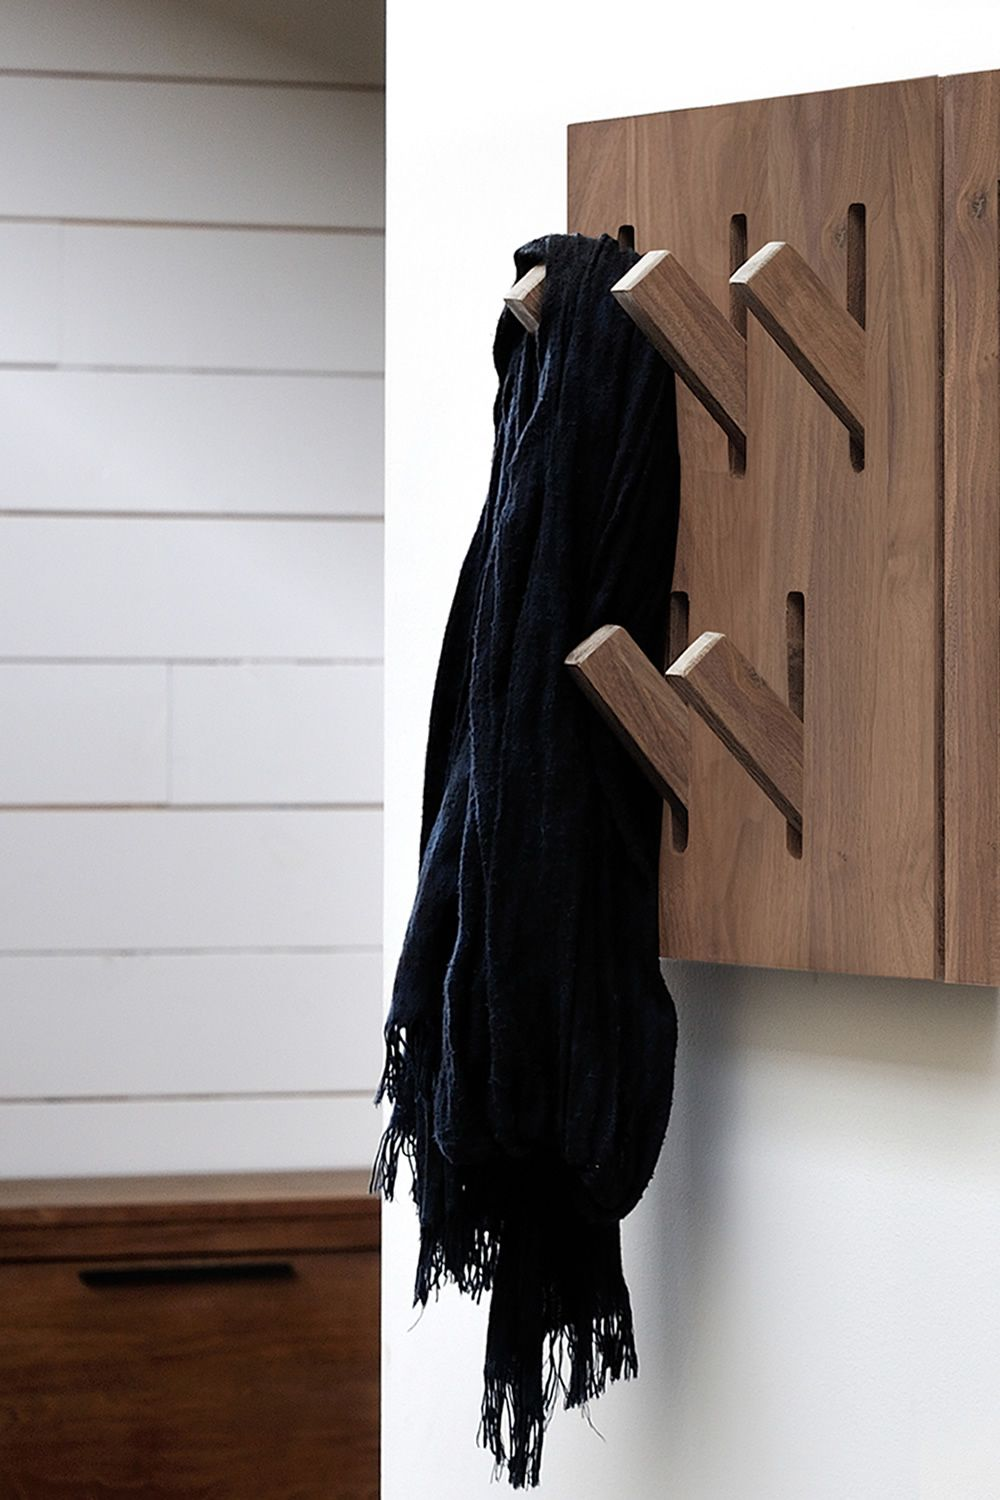 Utilitle h ethnicraft wall coat rack made of wood with Wall coat hanger